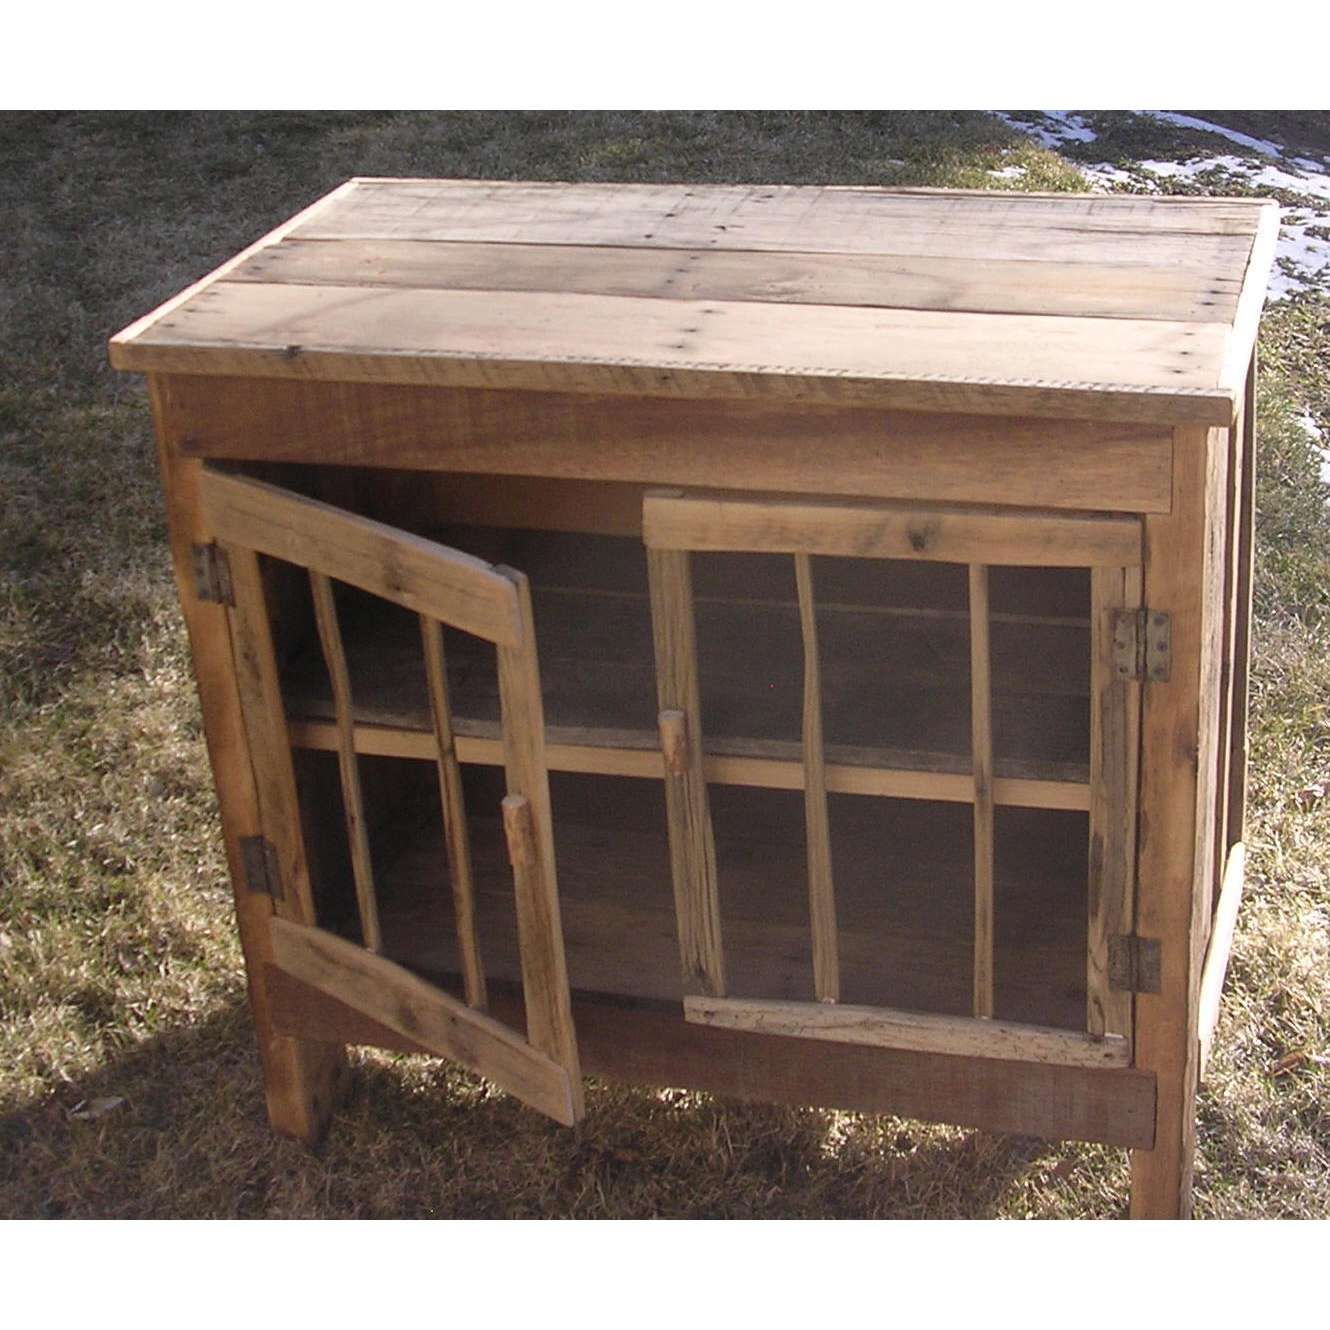 wood skid furniture. Furniture Made Pallets Reclaimed Wood Cabinet Skid